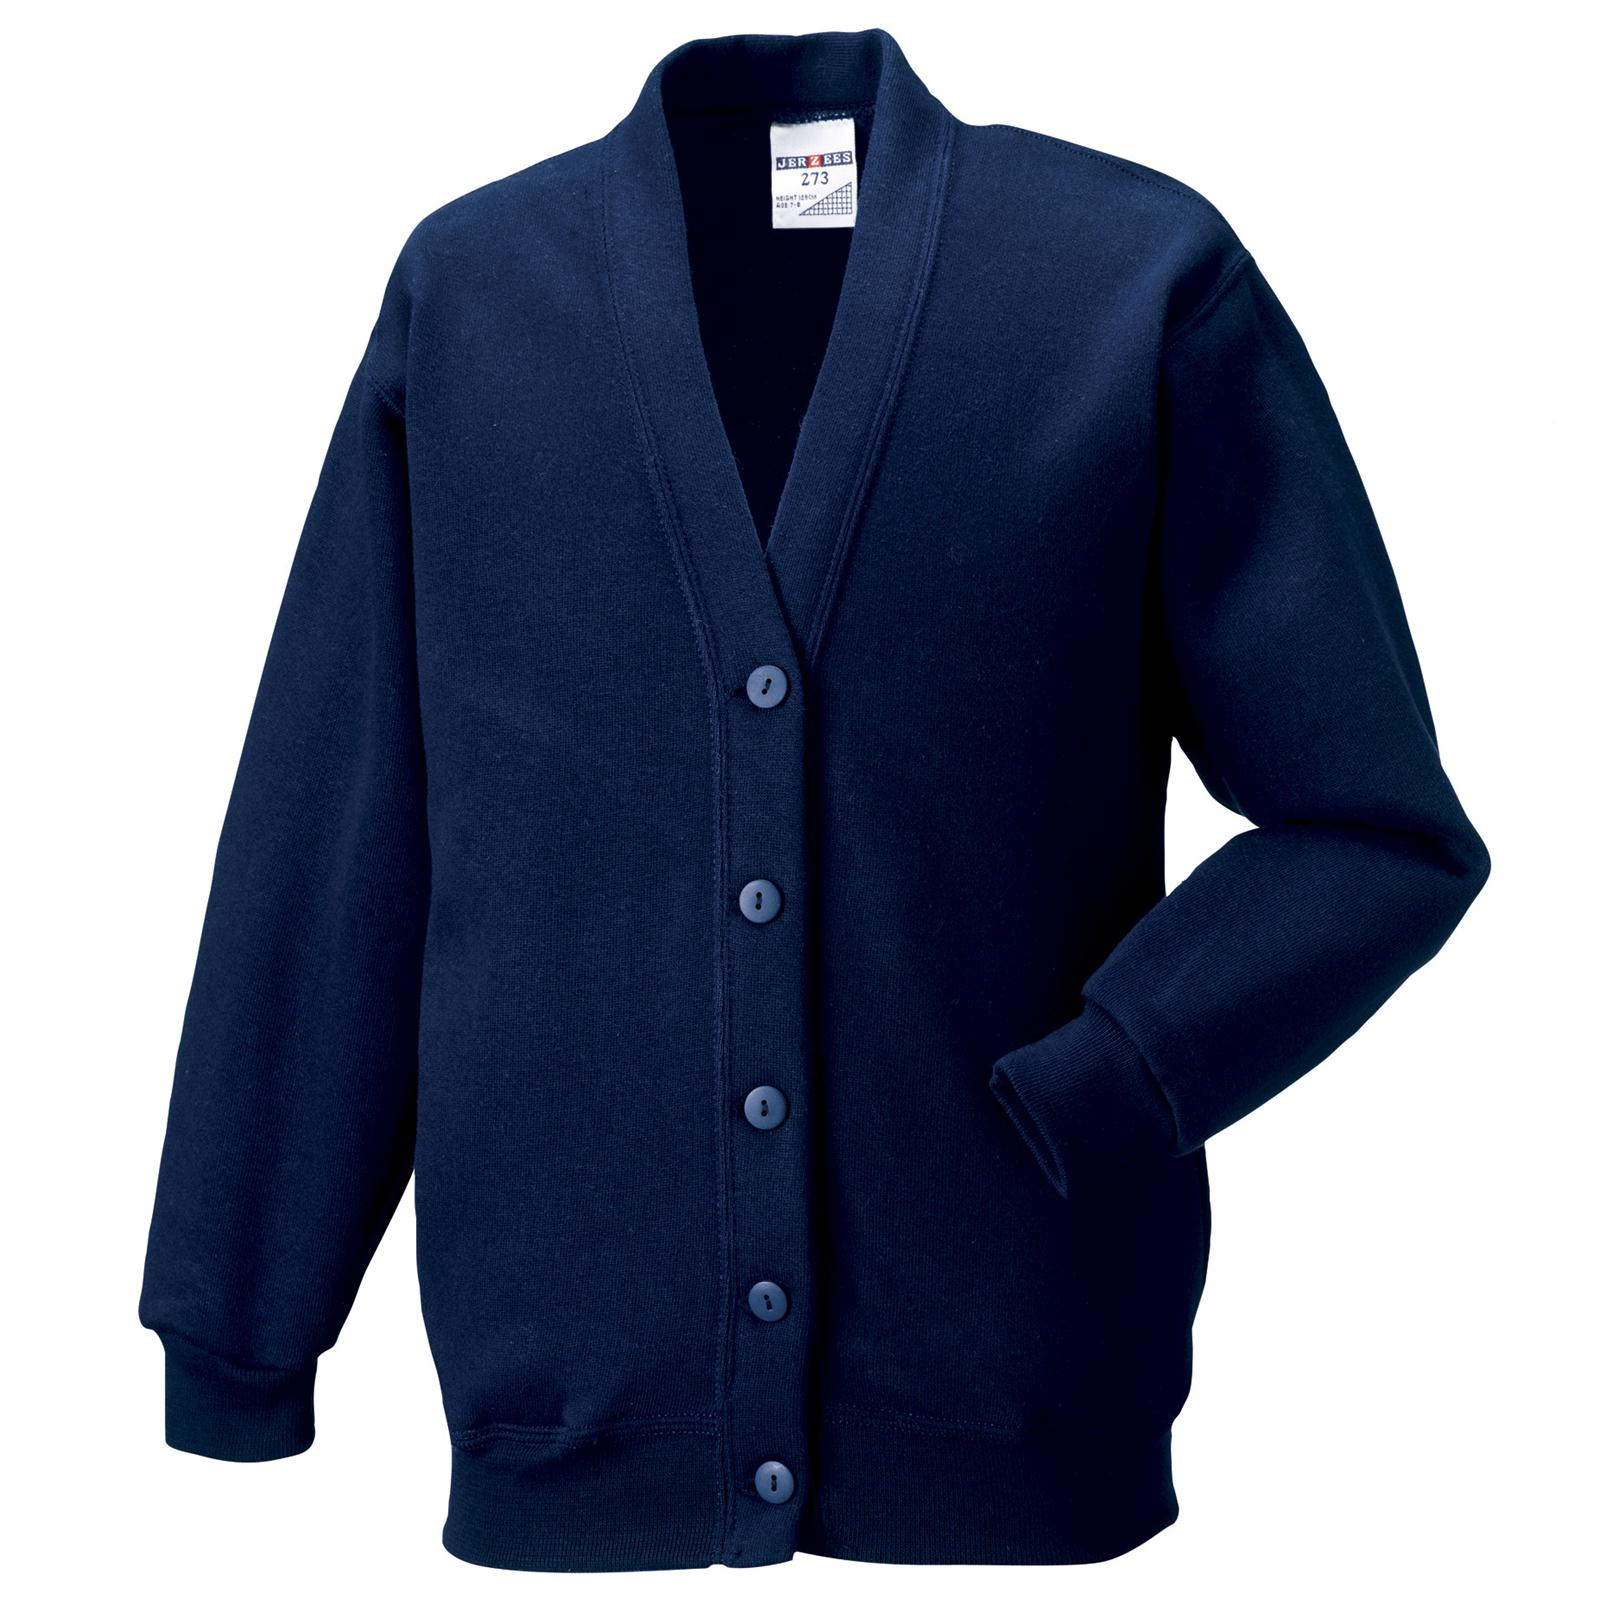 Shop for sweatshirt cardigan womens online at Target. Free shipping on purchases over $35 and save 5% every day with your Target REDcard.